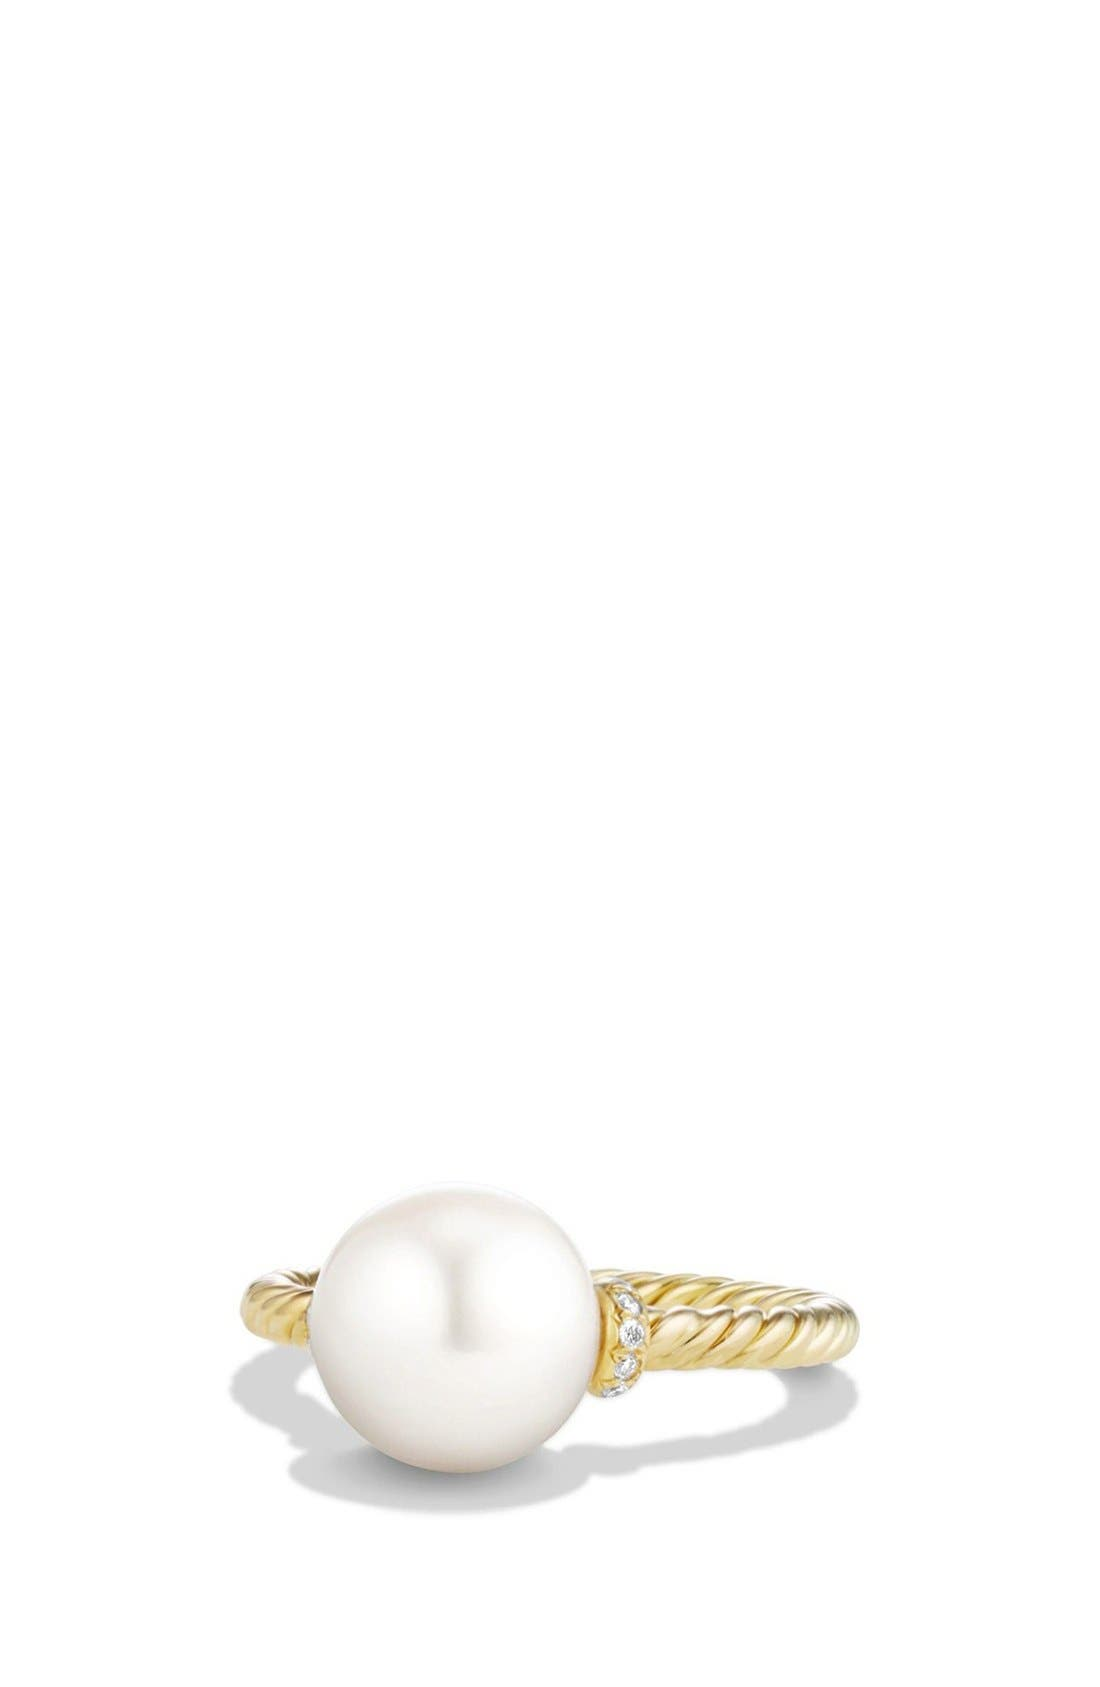 David Yurman 'Solari' Station Ring with Diamonds and Pearls